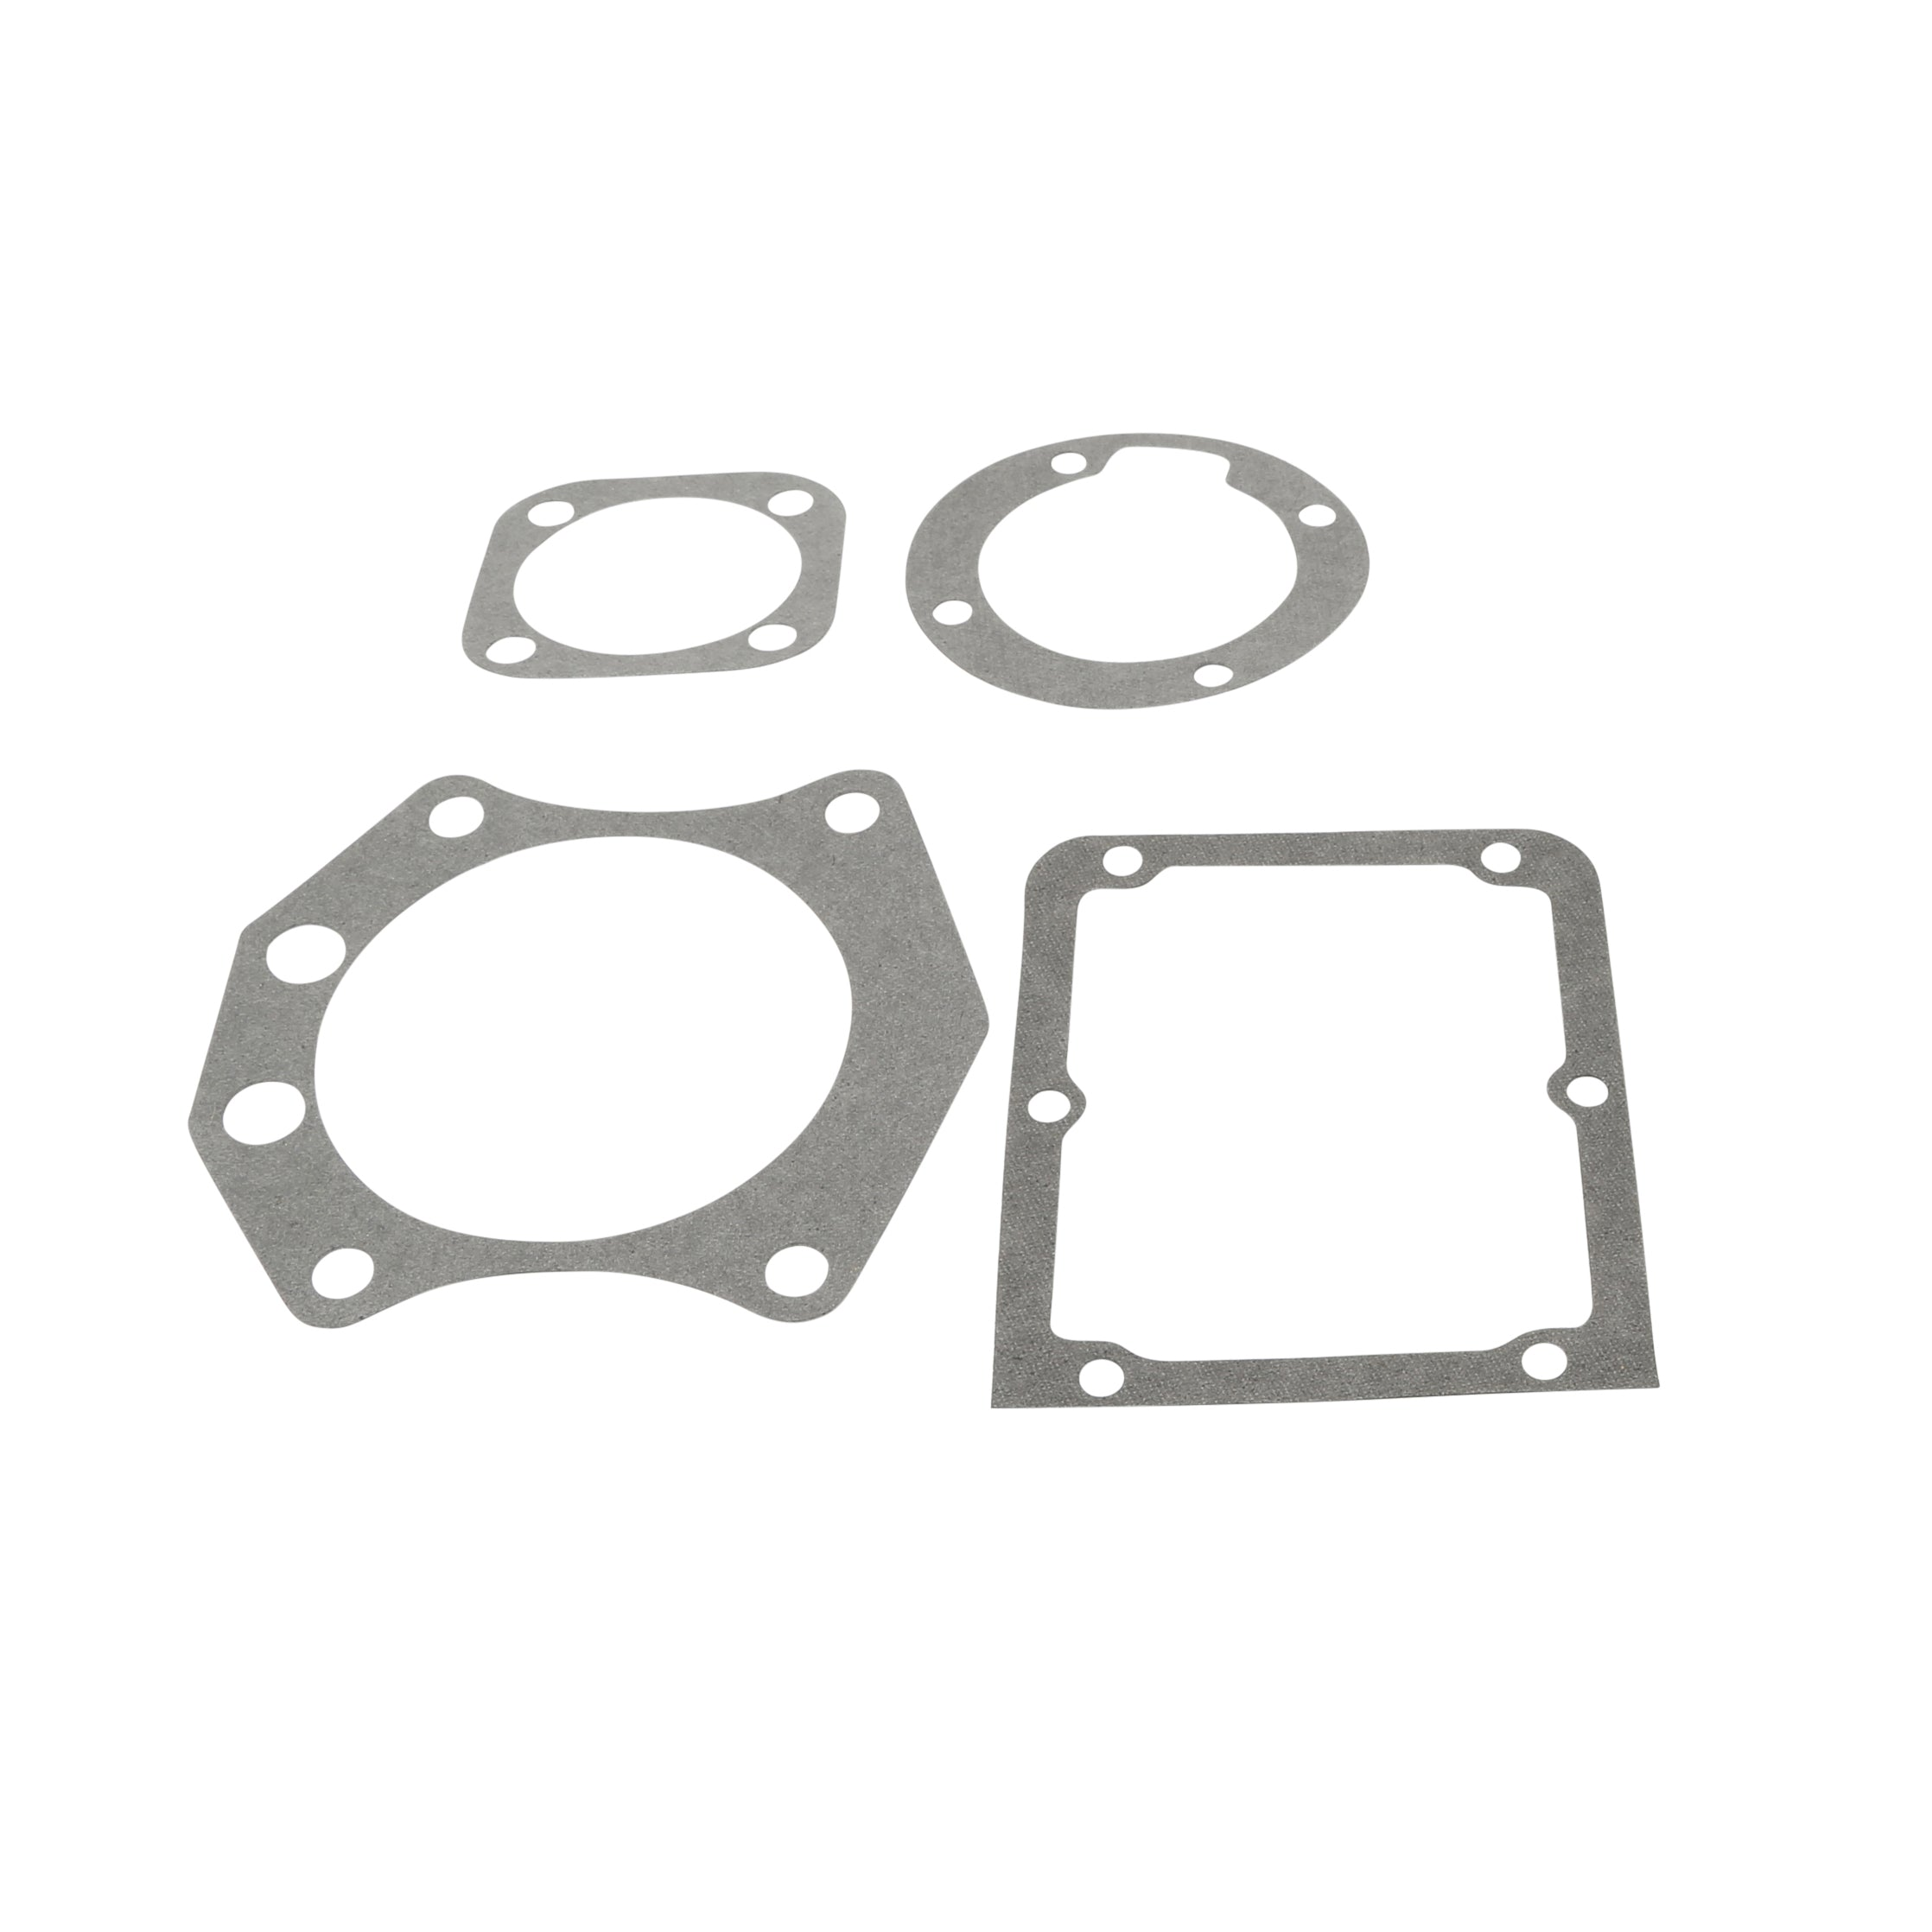 Transmission Gasket Set • 1928-31